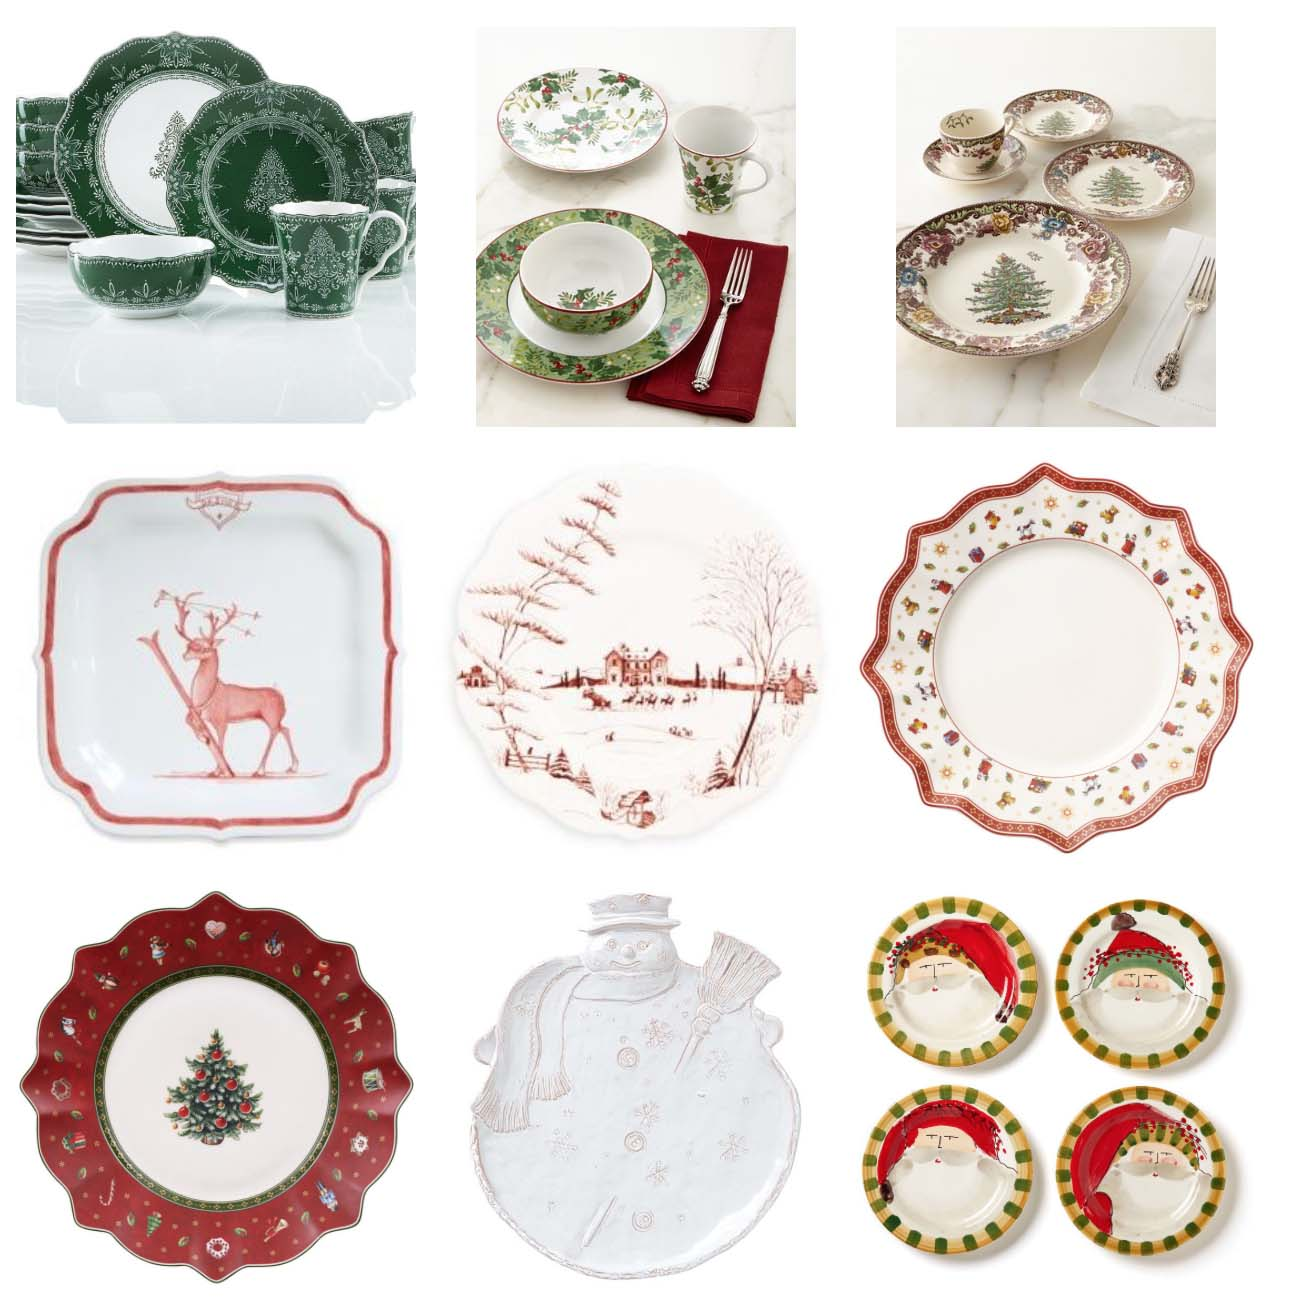 I Wrote About Christmas China Several Years Ago, However New Patterns Have  Been Released!